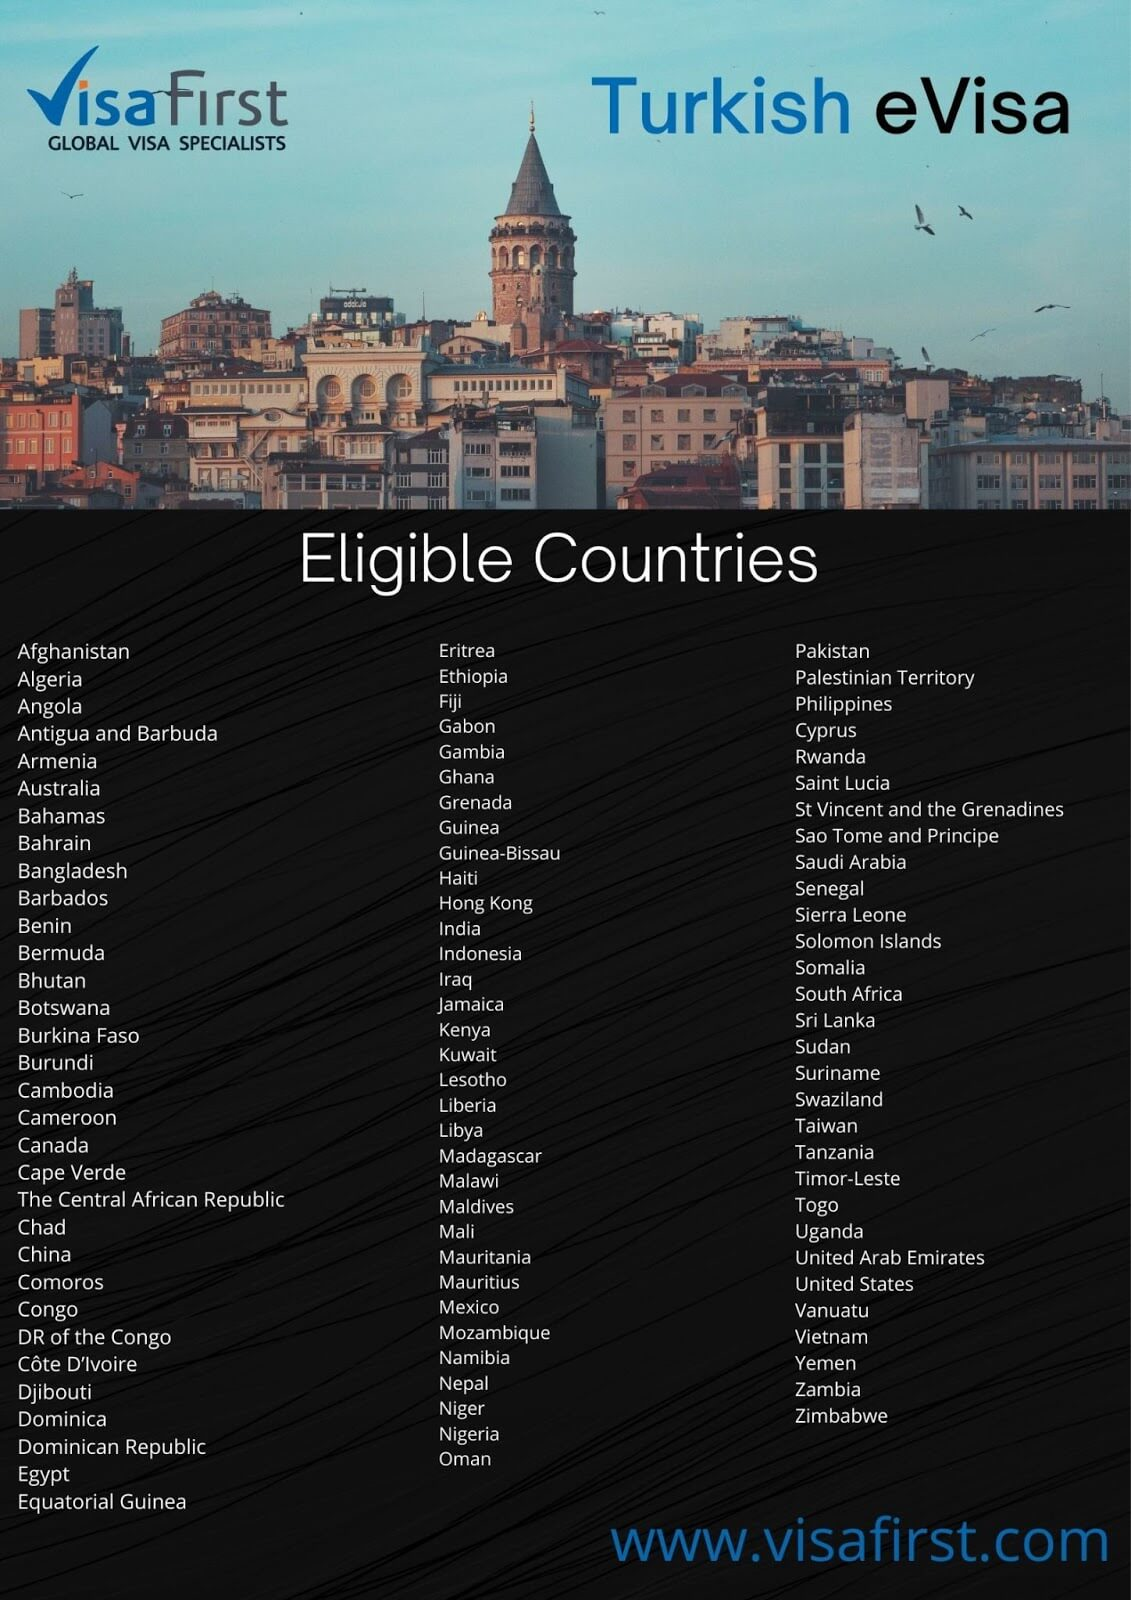 Turkey eVisa eligible countries infographic by VisaFirst